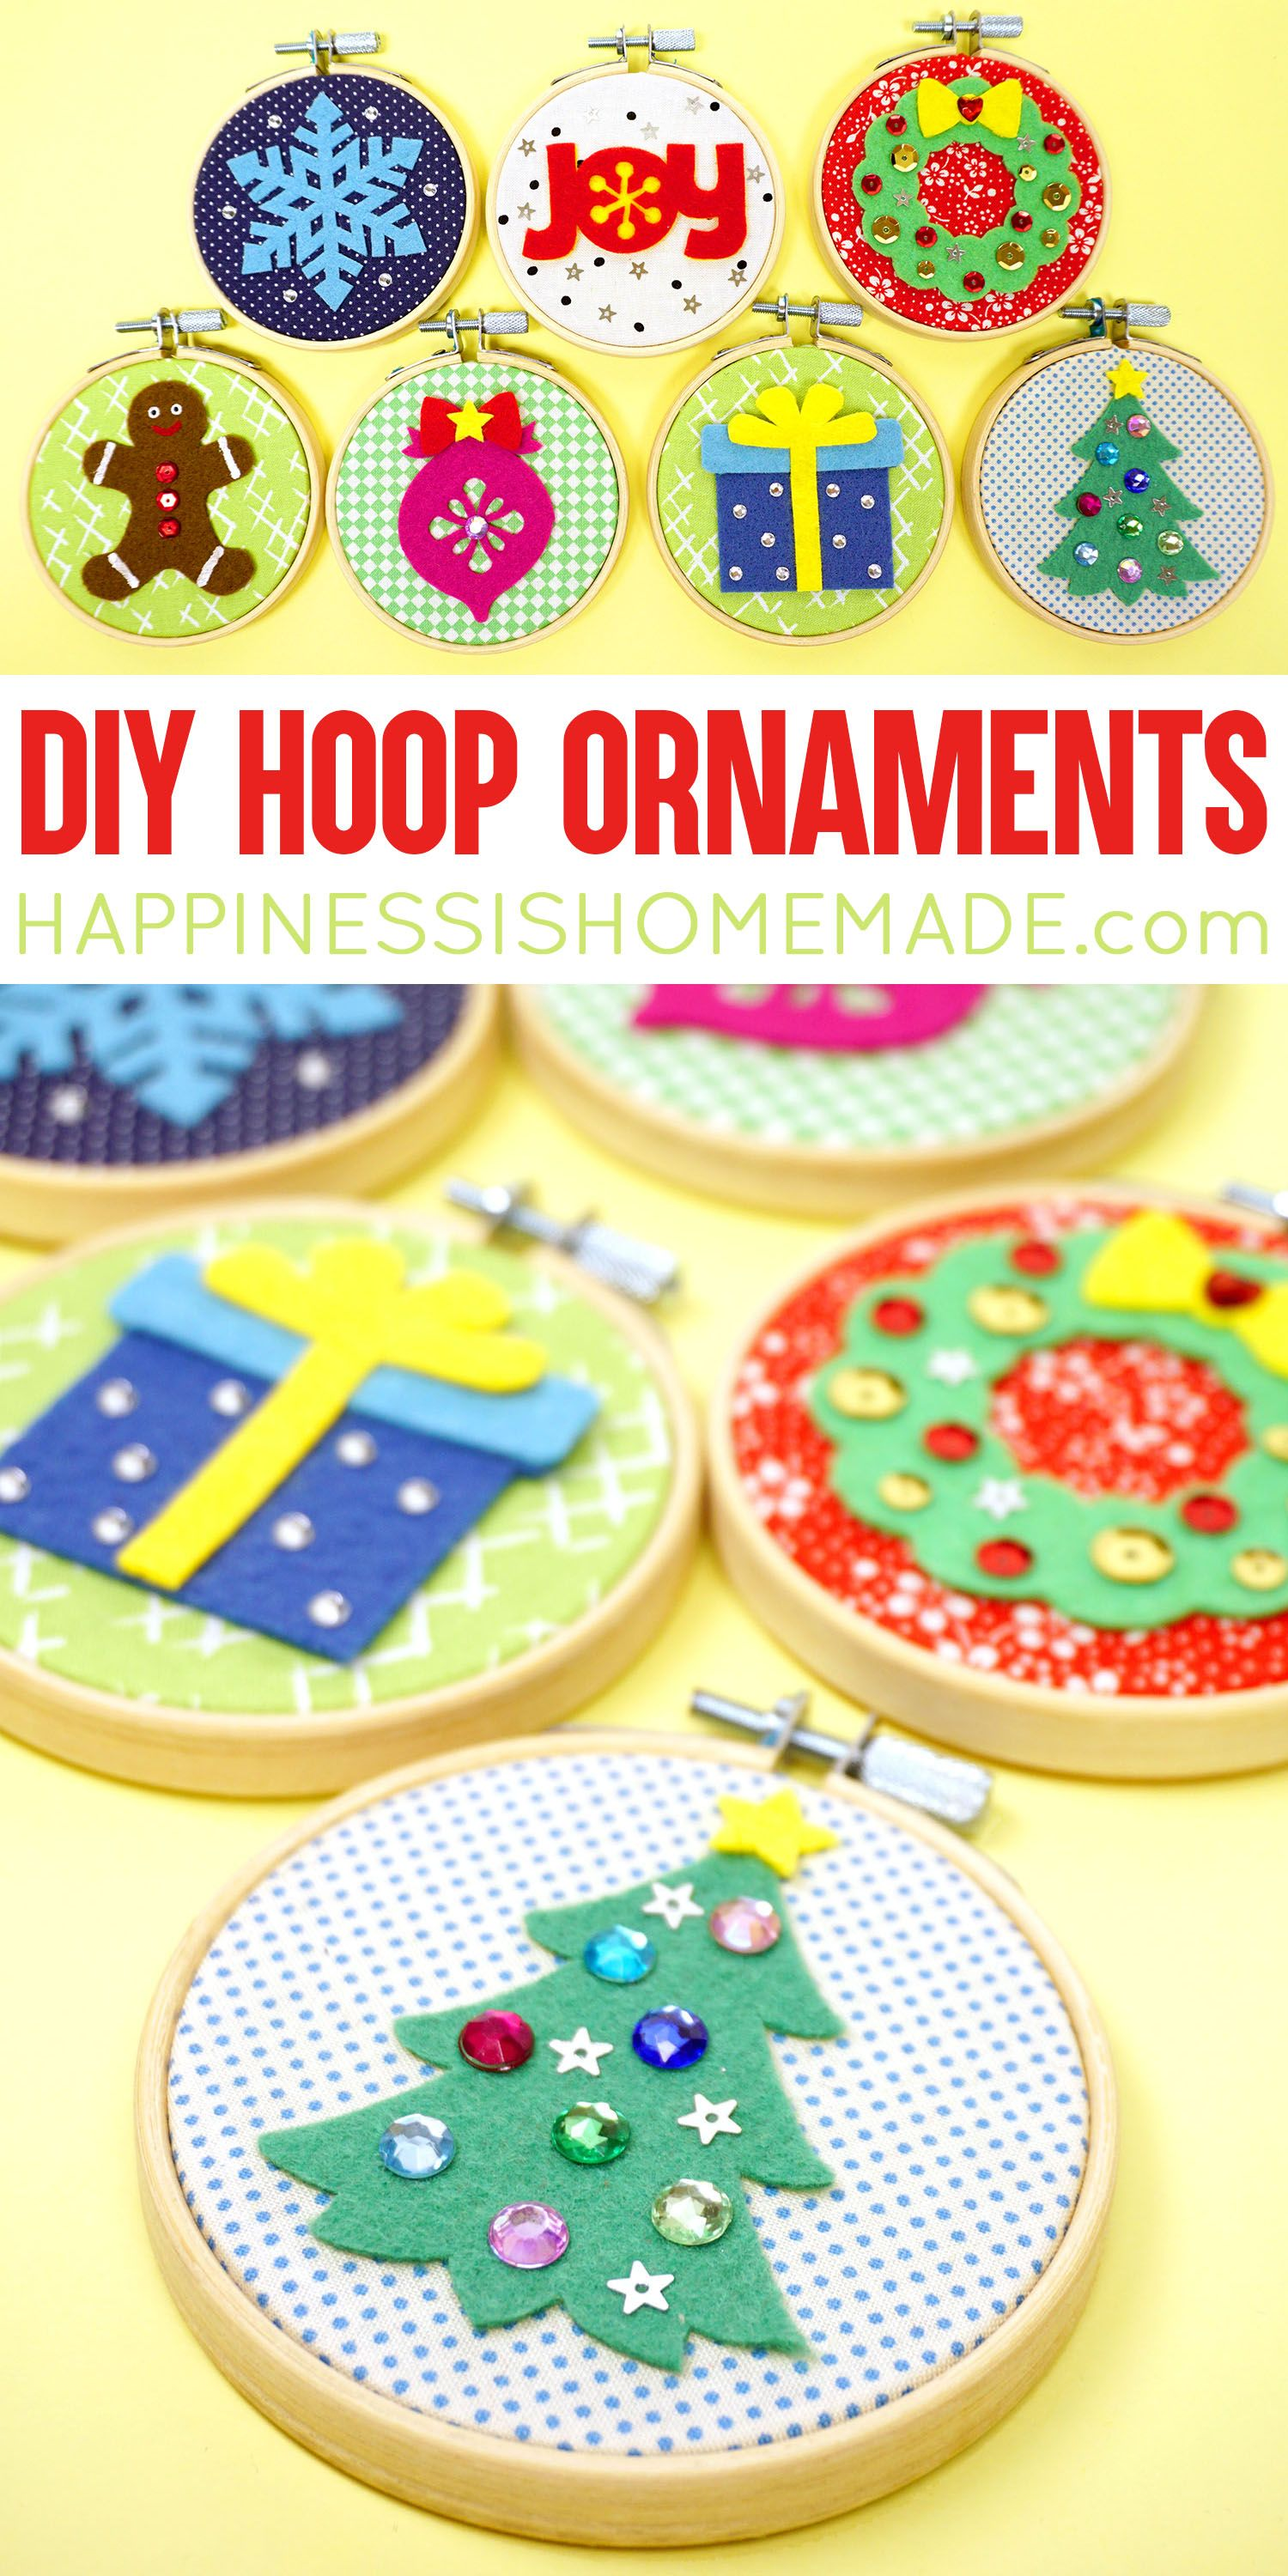 Diy Christmas Ornaments Easy Group Craft Great Ideas For A Fun